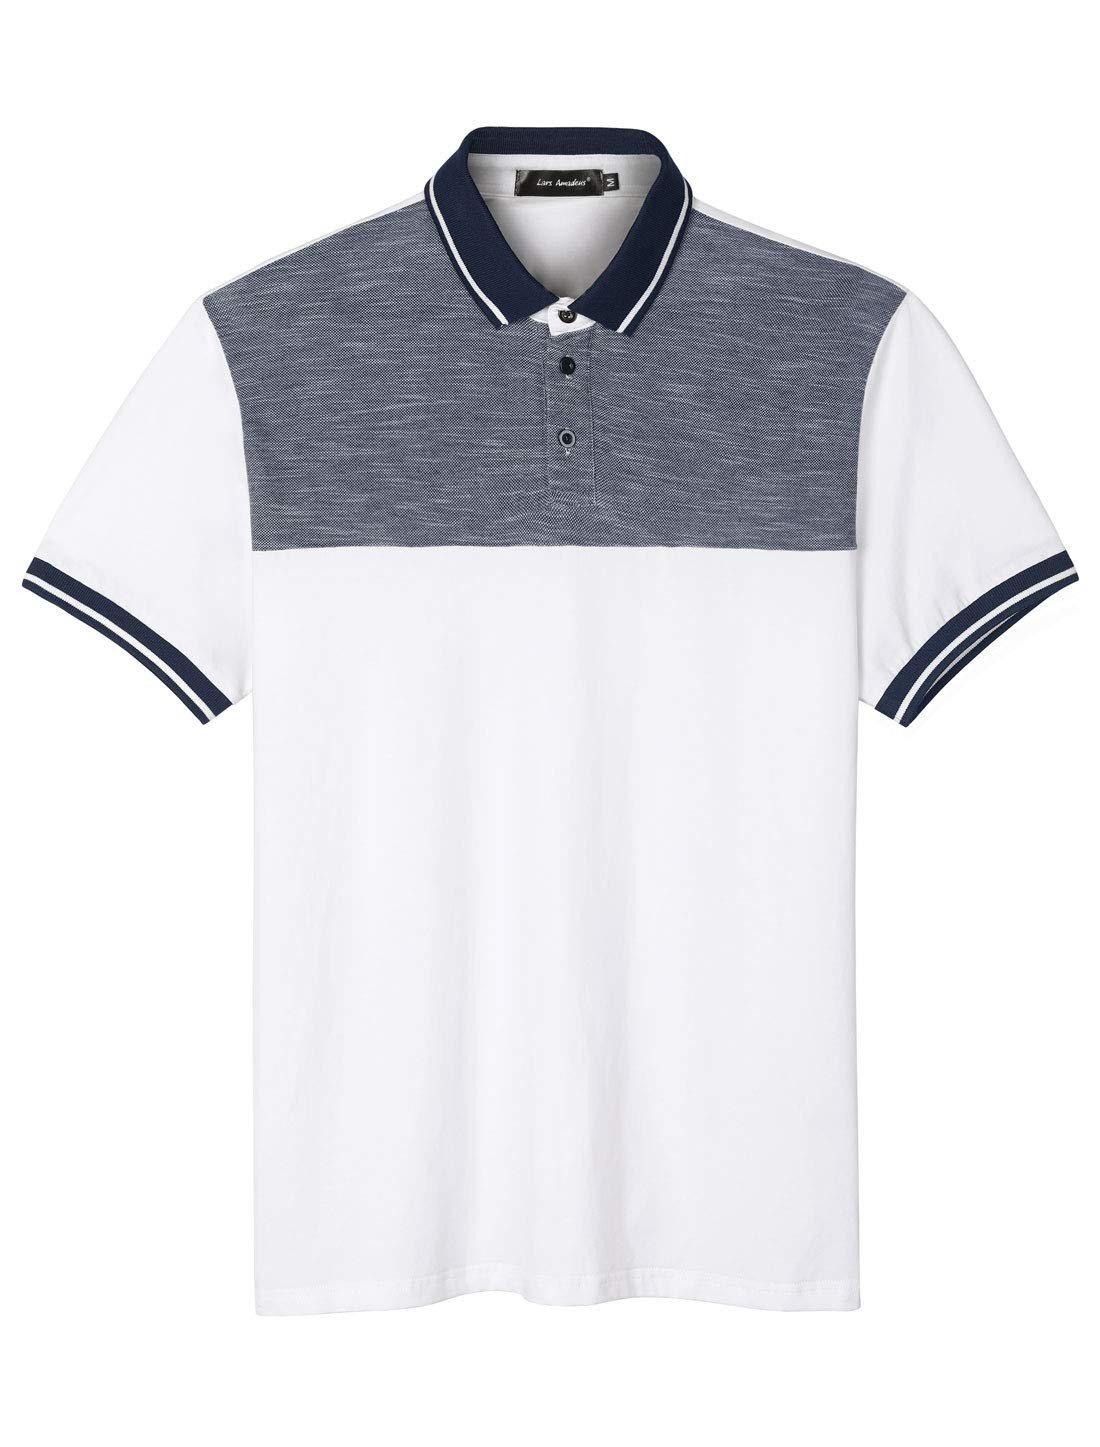 Lars Amadeus Men's Color Block Polo Shirt Summer Short Sleeves Panel Cotton Golf Shirts